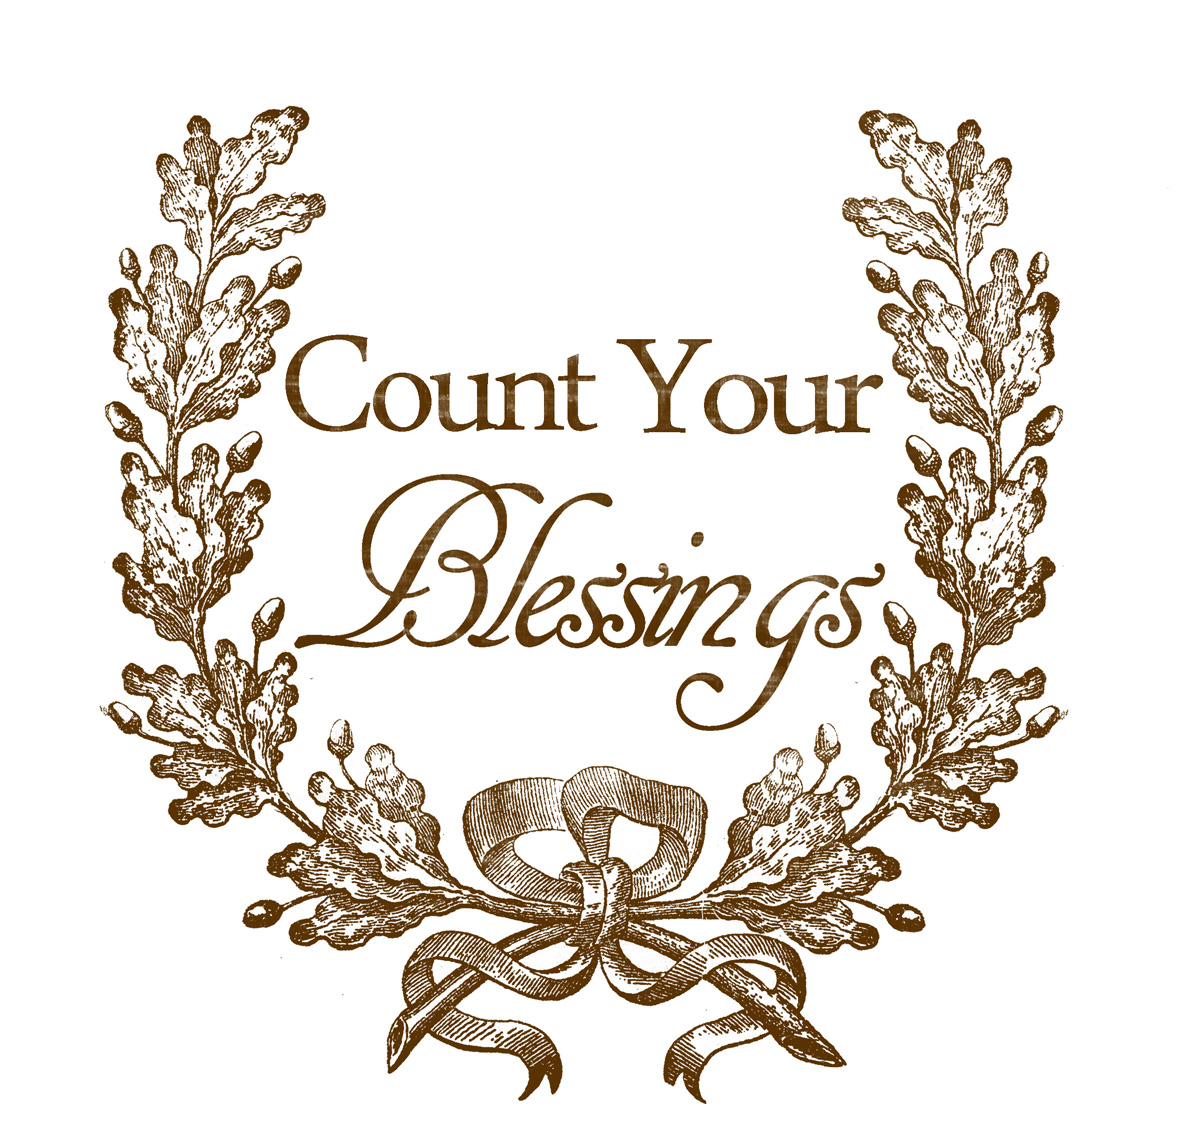 Blessings clipart 5